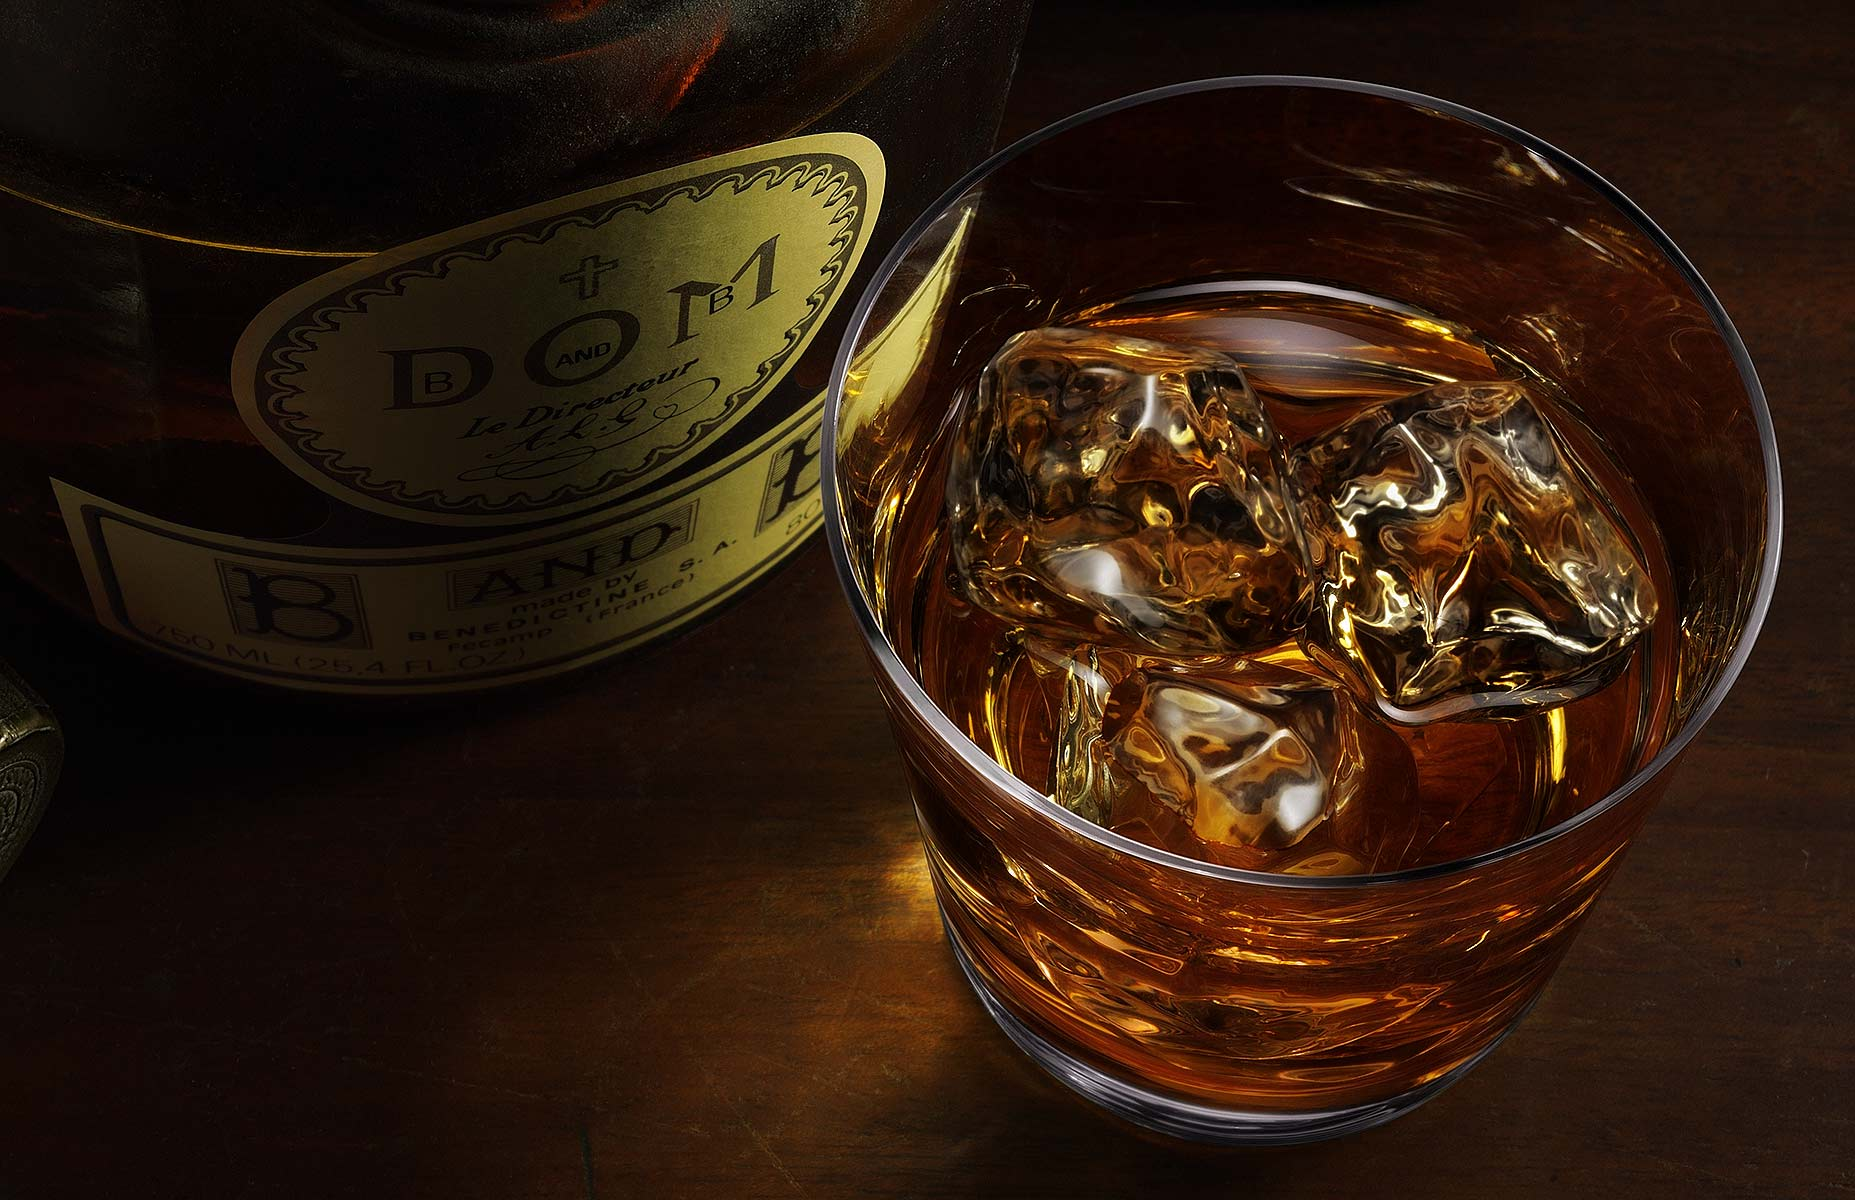 The camera aspect is at 60º in this brooding product photograph of a Dom B & B bottle with a lowball glass half filled with ice and Irish whiskey. The bottle stopper is mysteriously in the shadows left of the centered bottle with the ice and whiskey glass on the right. A soft focus tankard rests subtly in the upper right corner and the subjects are comfortably composed on a rustic wood surface.